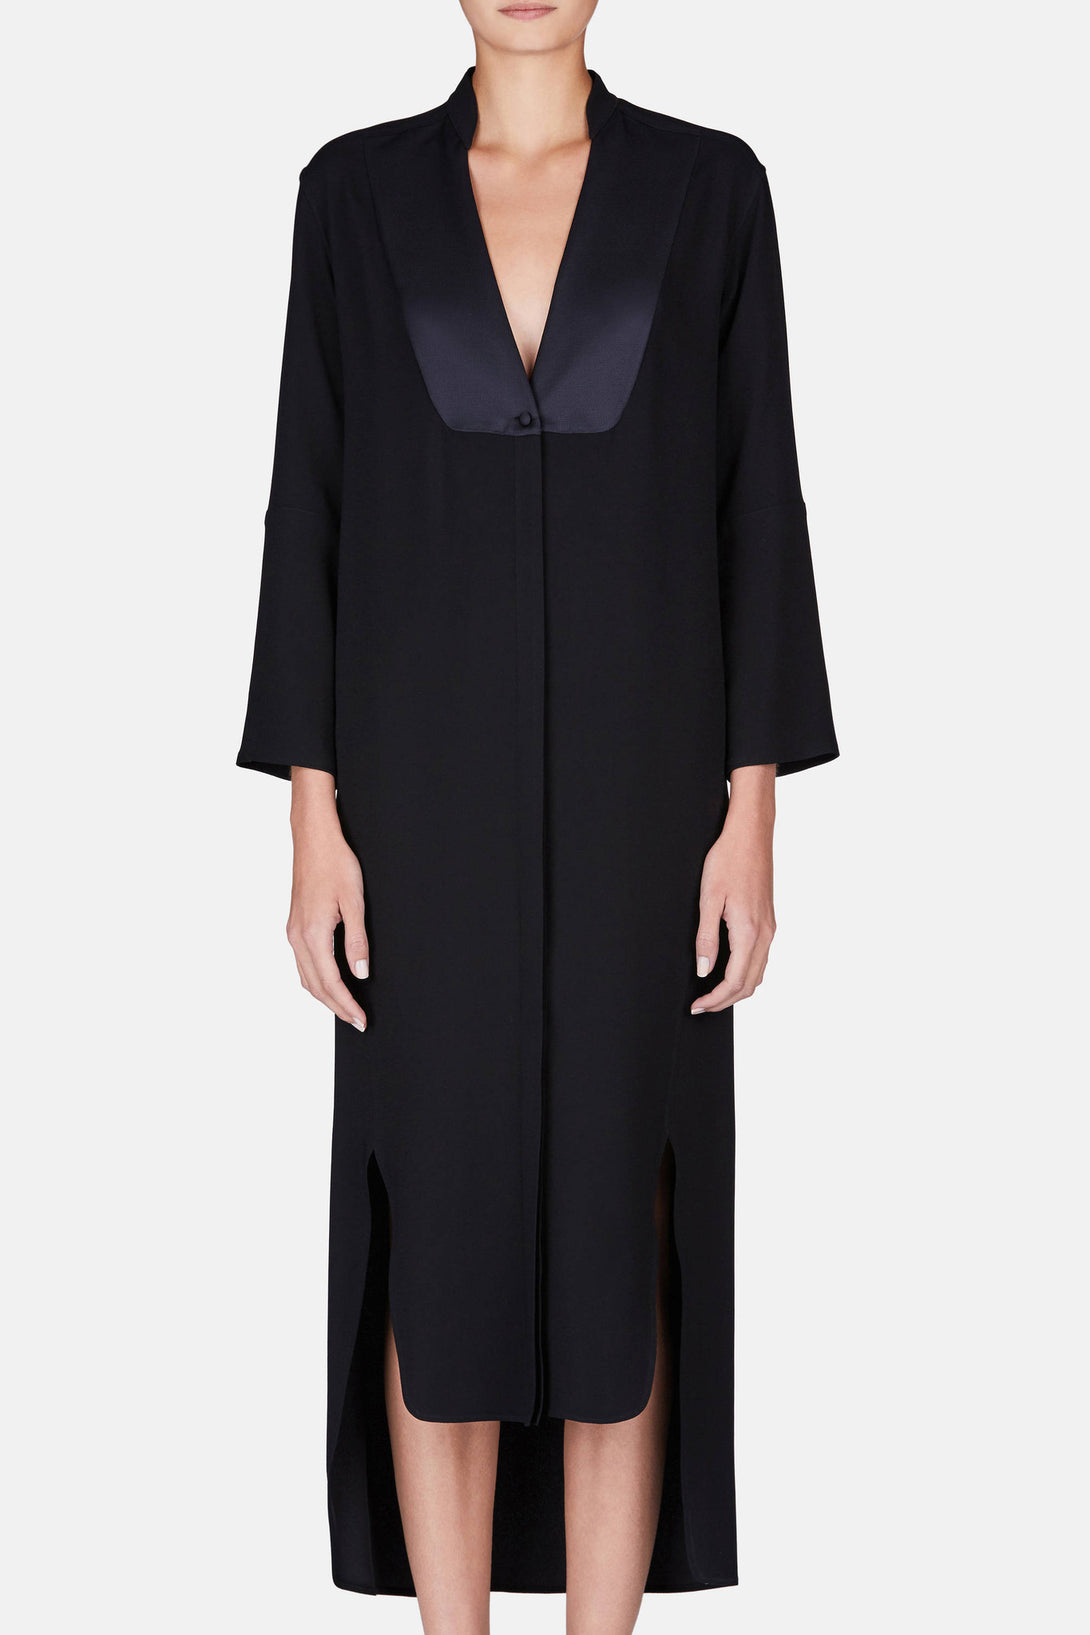 Lisa Bib Shirtdress - Black